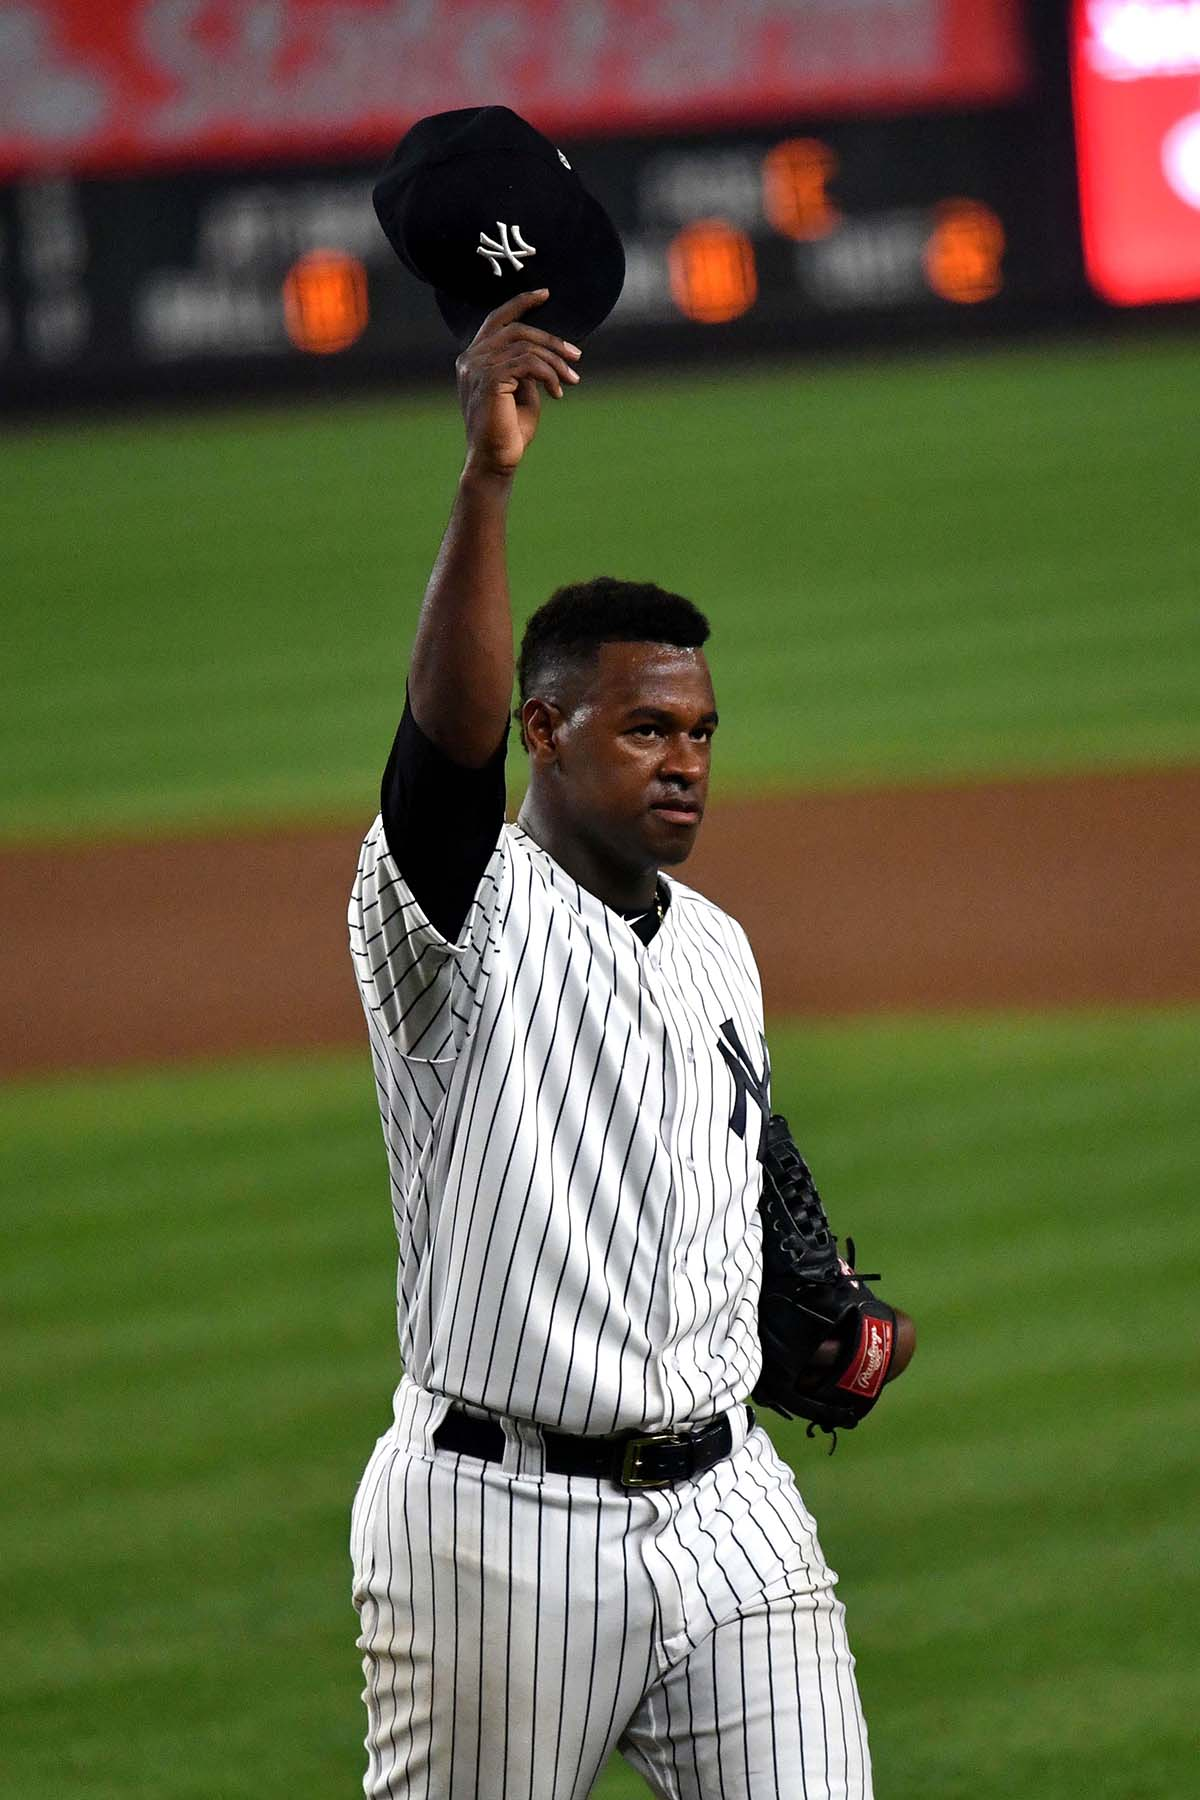 bb15f22e923a Yankees starting pitcher Luis Severino walks off the field to a standing  ovation - Gold Medal Impressions